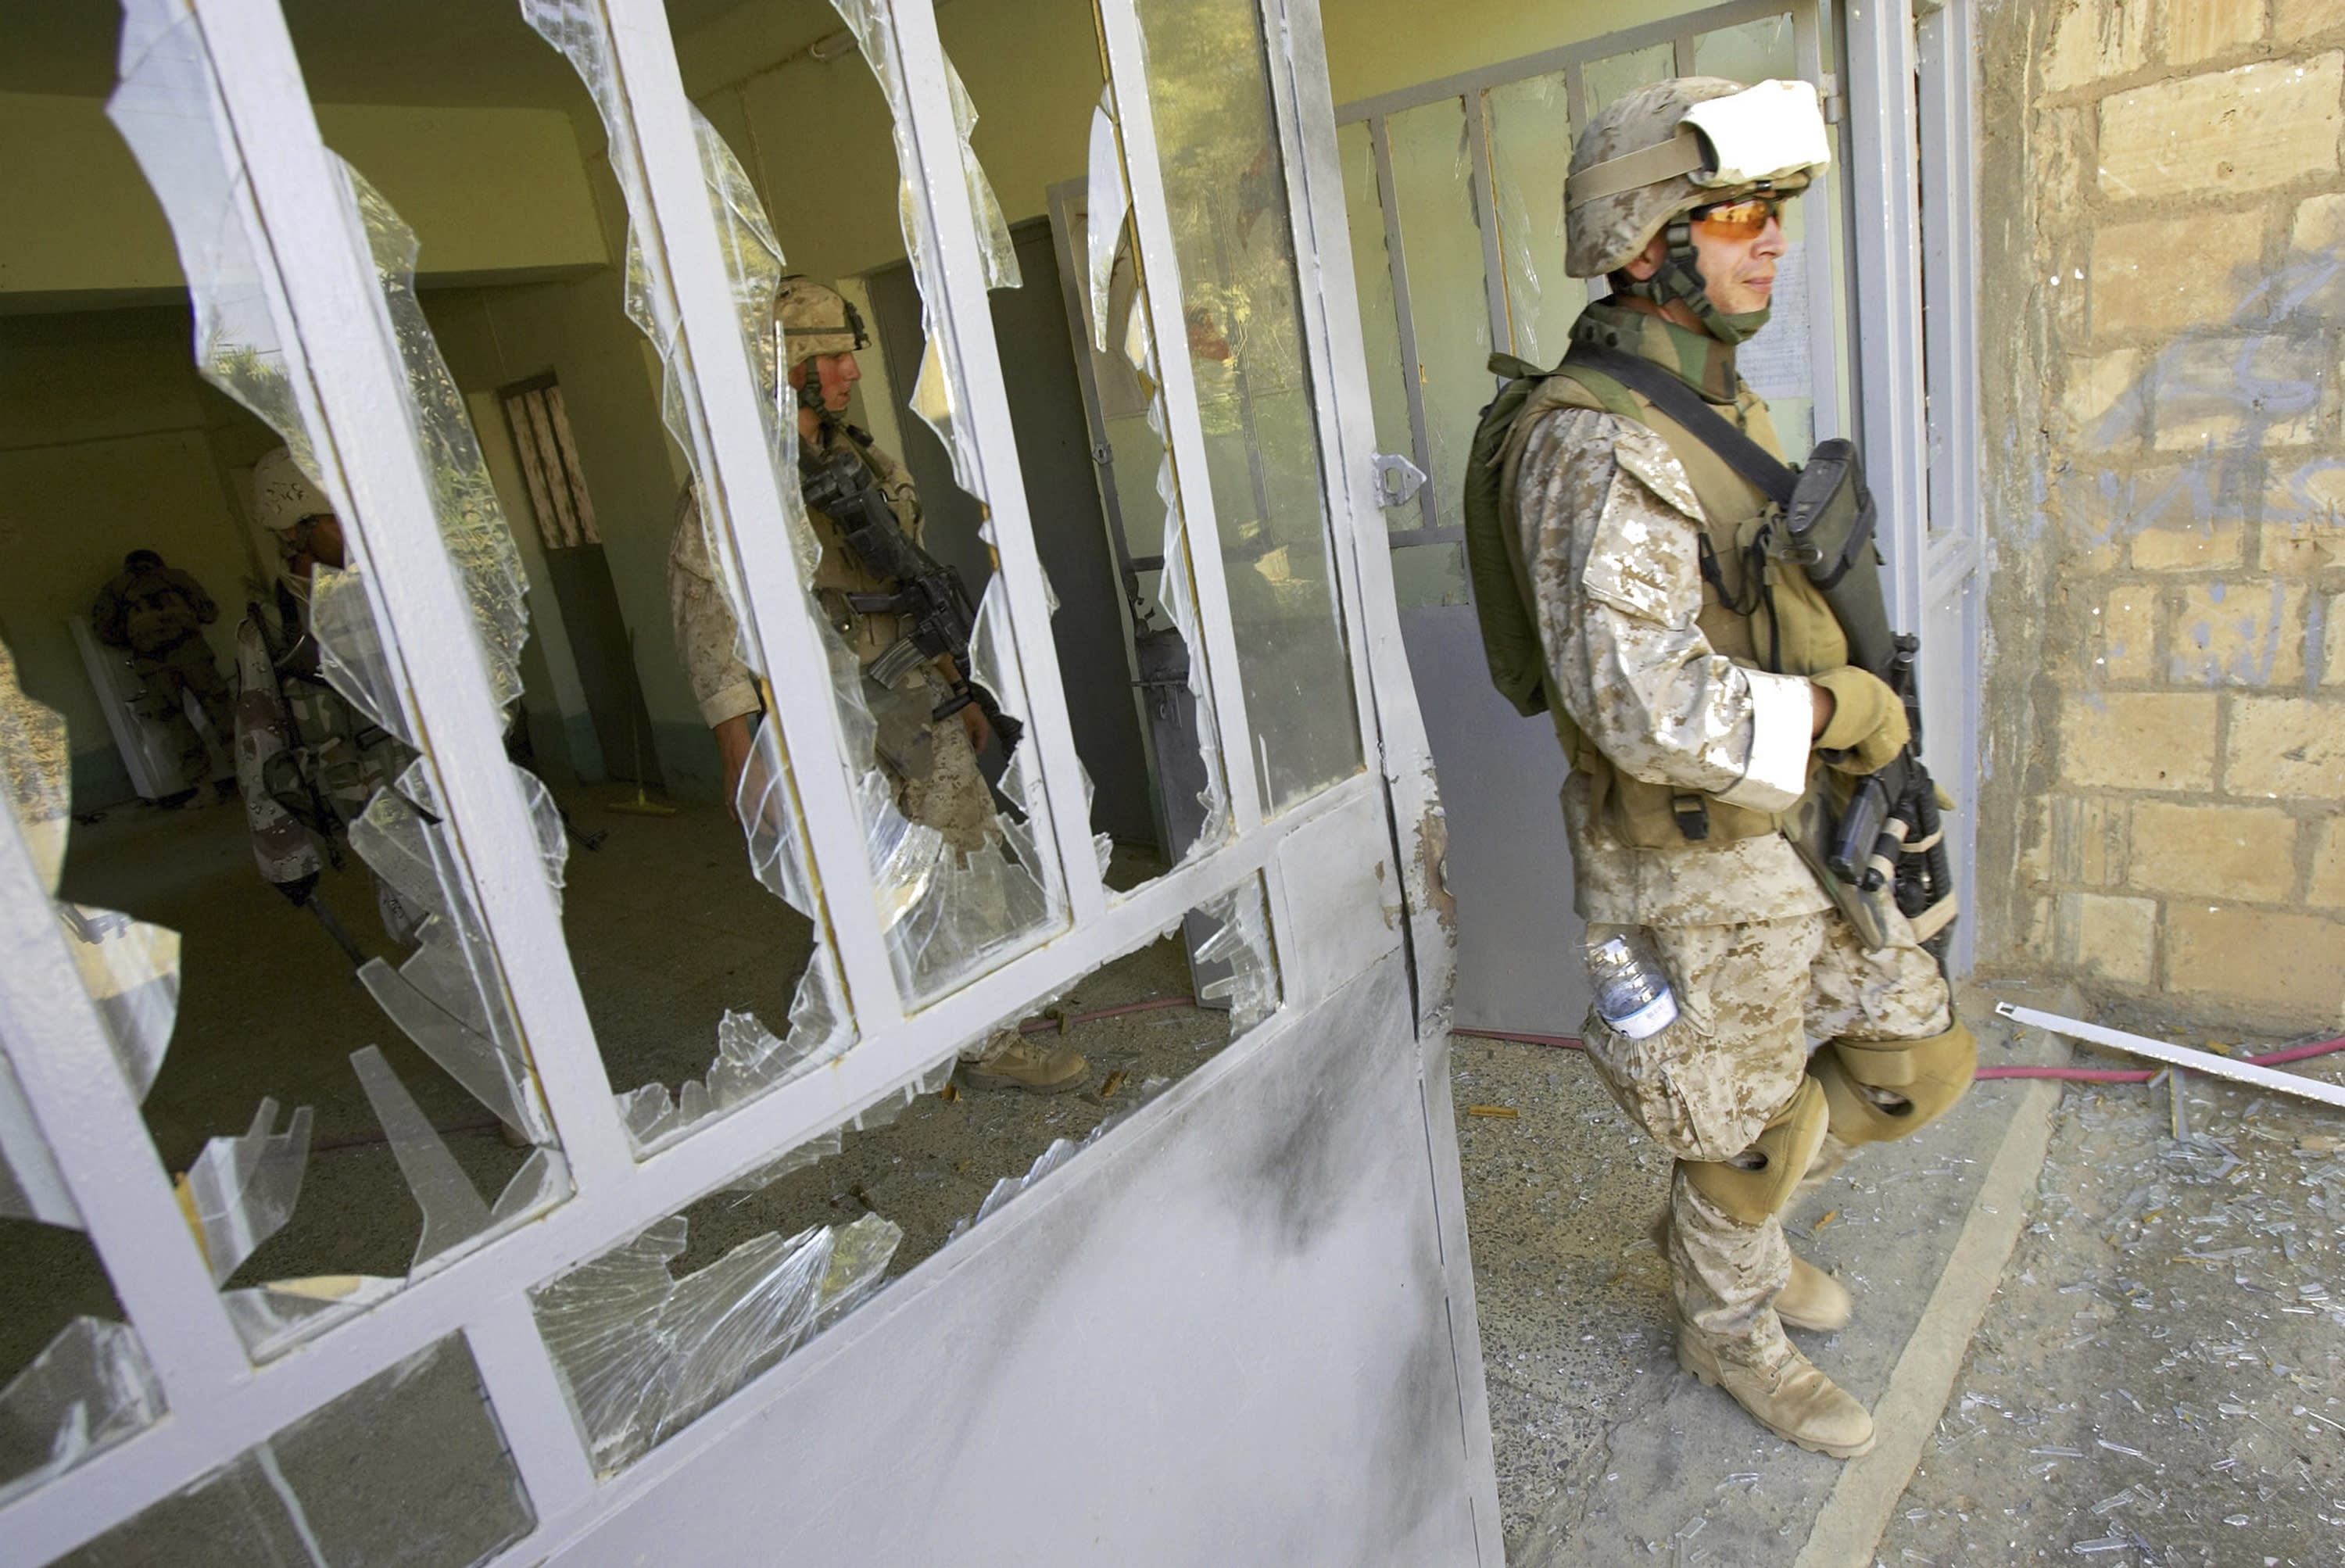 FILE—This file photo from Aug. 6, 2005, shows U.S. Marine Staff Sgt. Brian Hamilton of Columbus, Ohio, from Lima Company of the 3rd Battalion, 25th Regiment as he exits after searching a school, in Parwana, near Haditha, Iraq. Days before, a nearby roadside bomb killed 14 Marines, many from this platoon, and a civilian interpreter on August 3, 2005. Some survivors and families of those killed had planned a 15-year reunion this weekend, but it had to be canceled amid restrictions for the COVID-19 pandemic. (AP Photo/Jacob Silberberg, File)